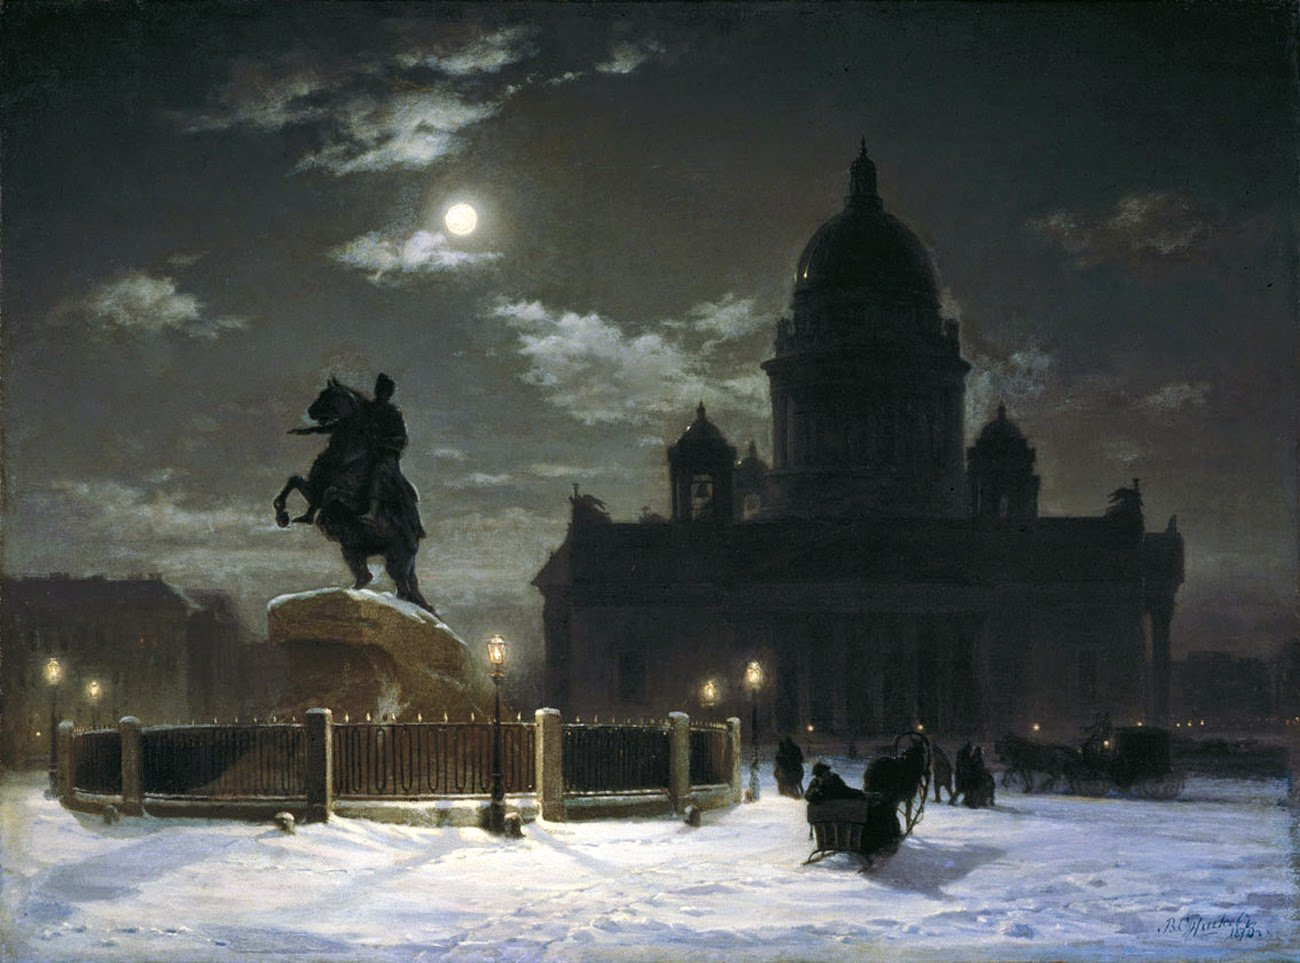 Vasily Surikov View of monument to Peter I on the Senate Square in St. Petersburg 1870 https://t.co/287ILImtrS